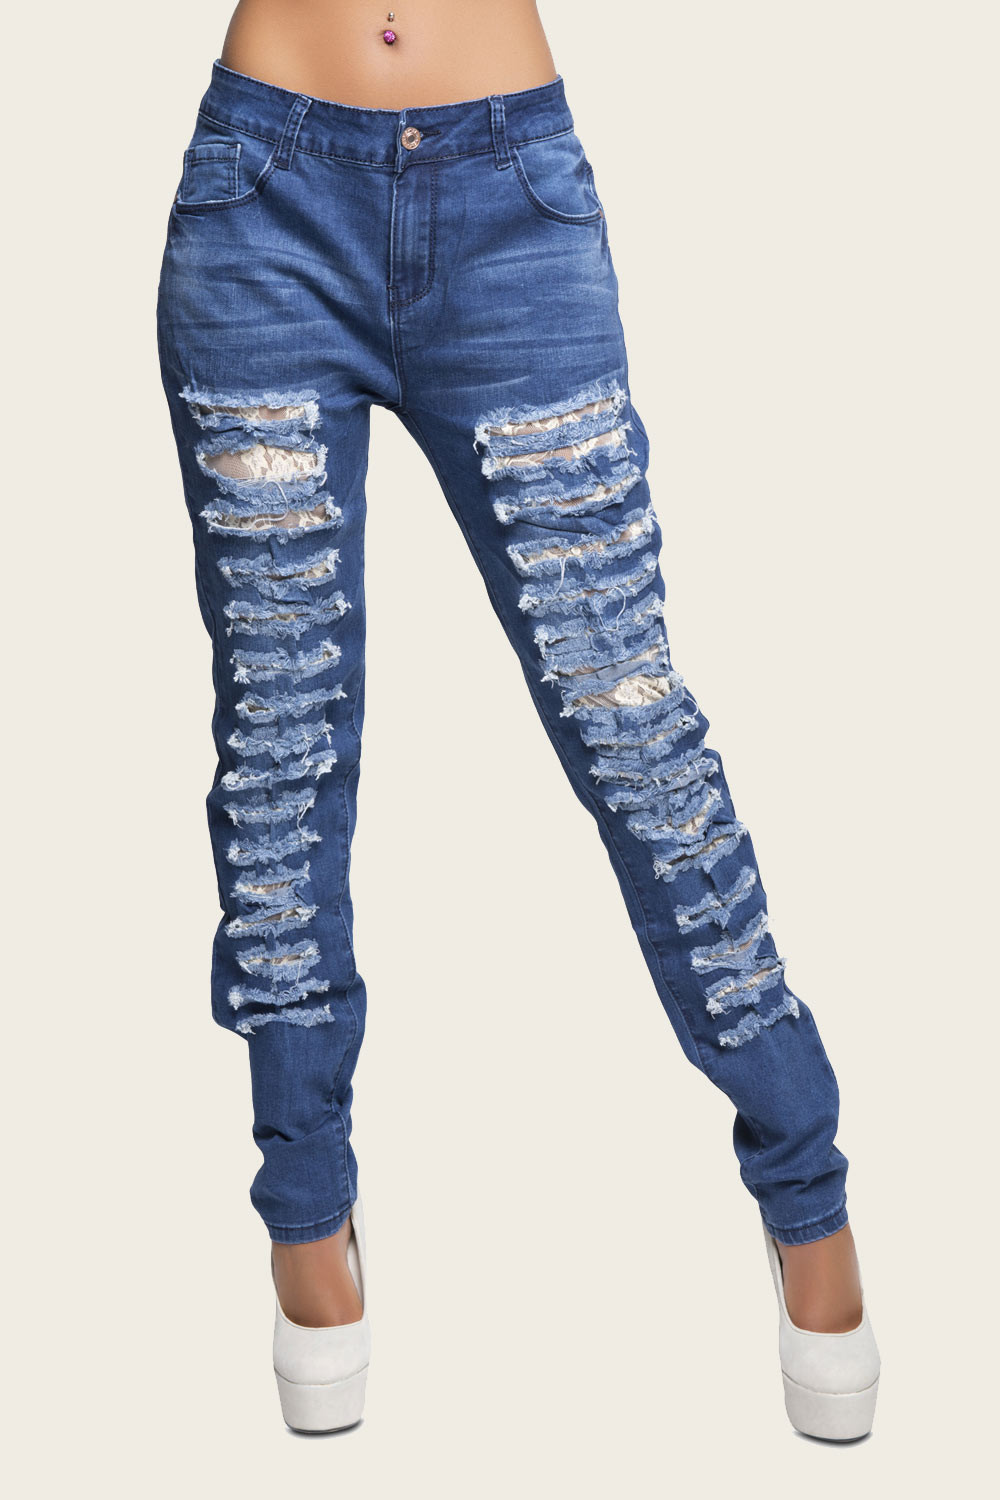 ccf8ed07b6be Women jeans UK, trousers have been worn since old times and all through the  medieval period, turning into the most well-known type of lower-body attire  for ...